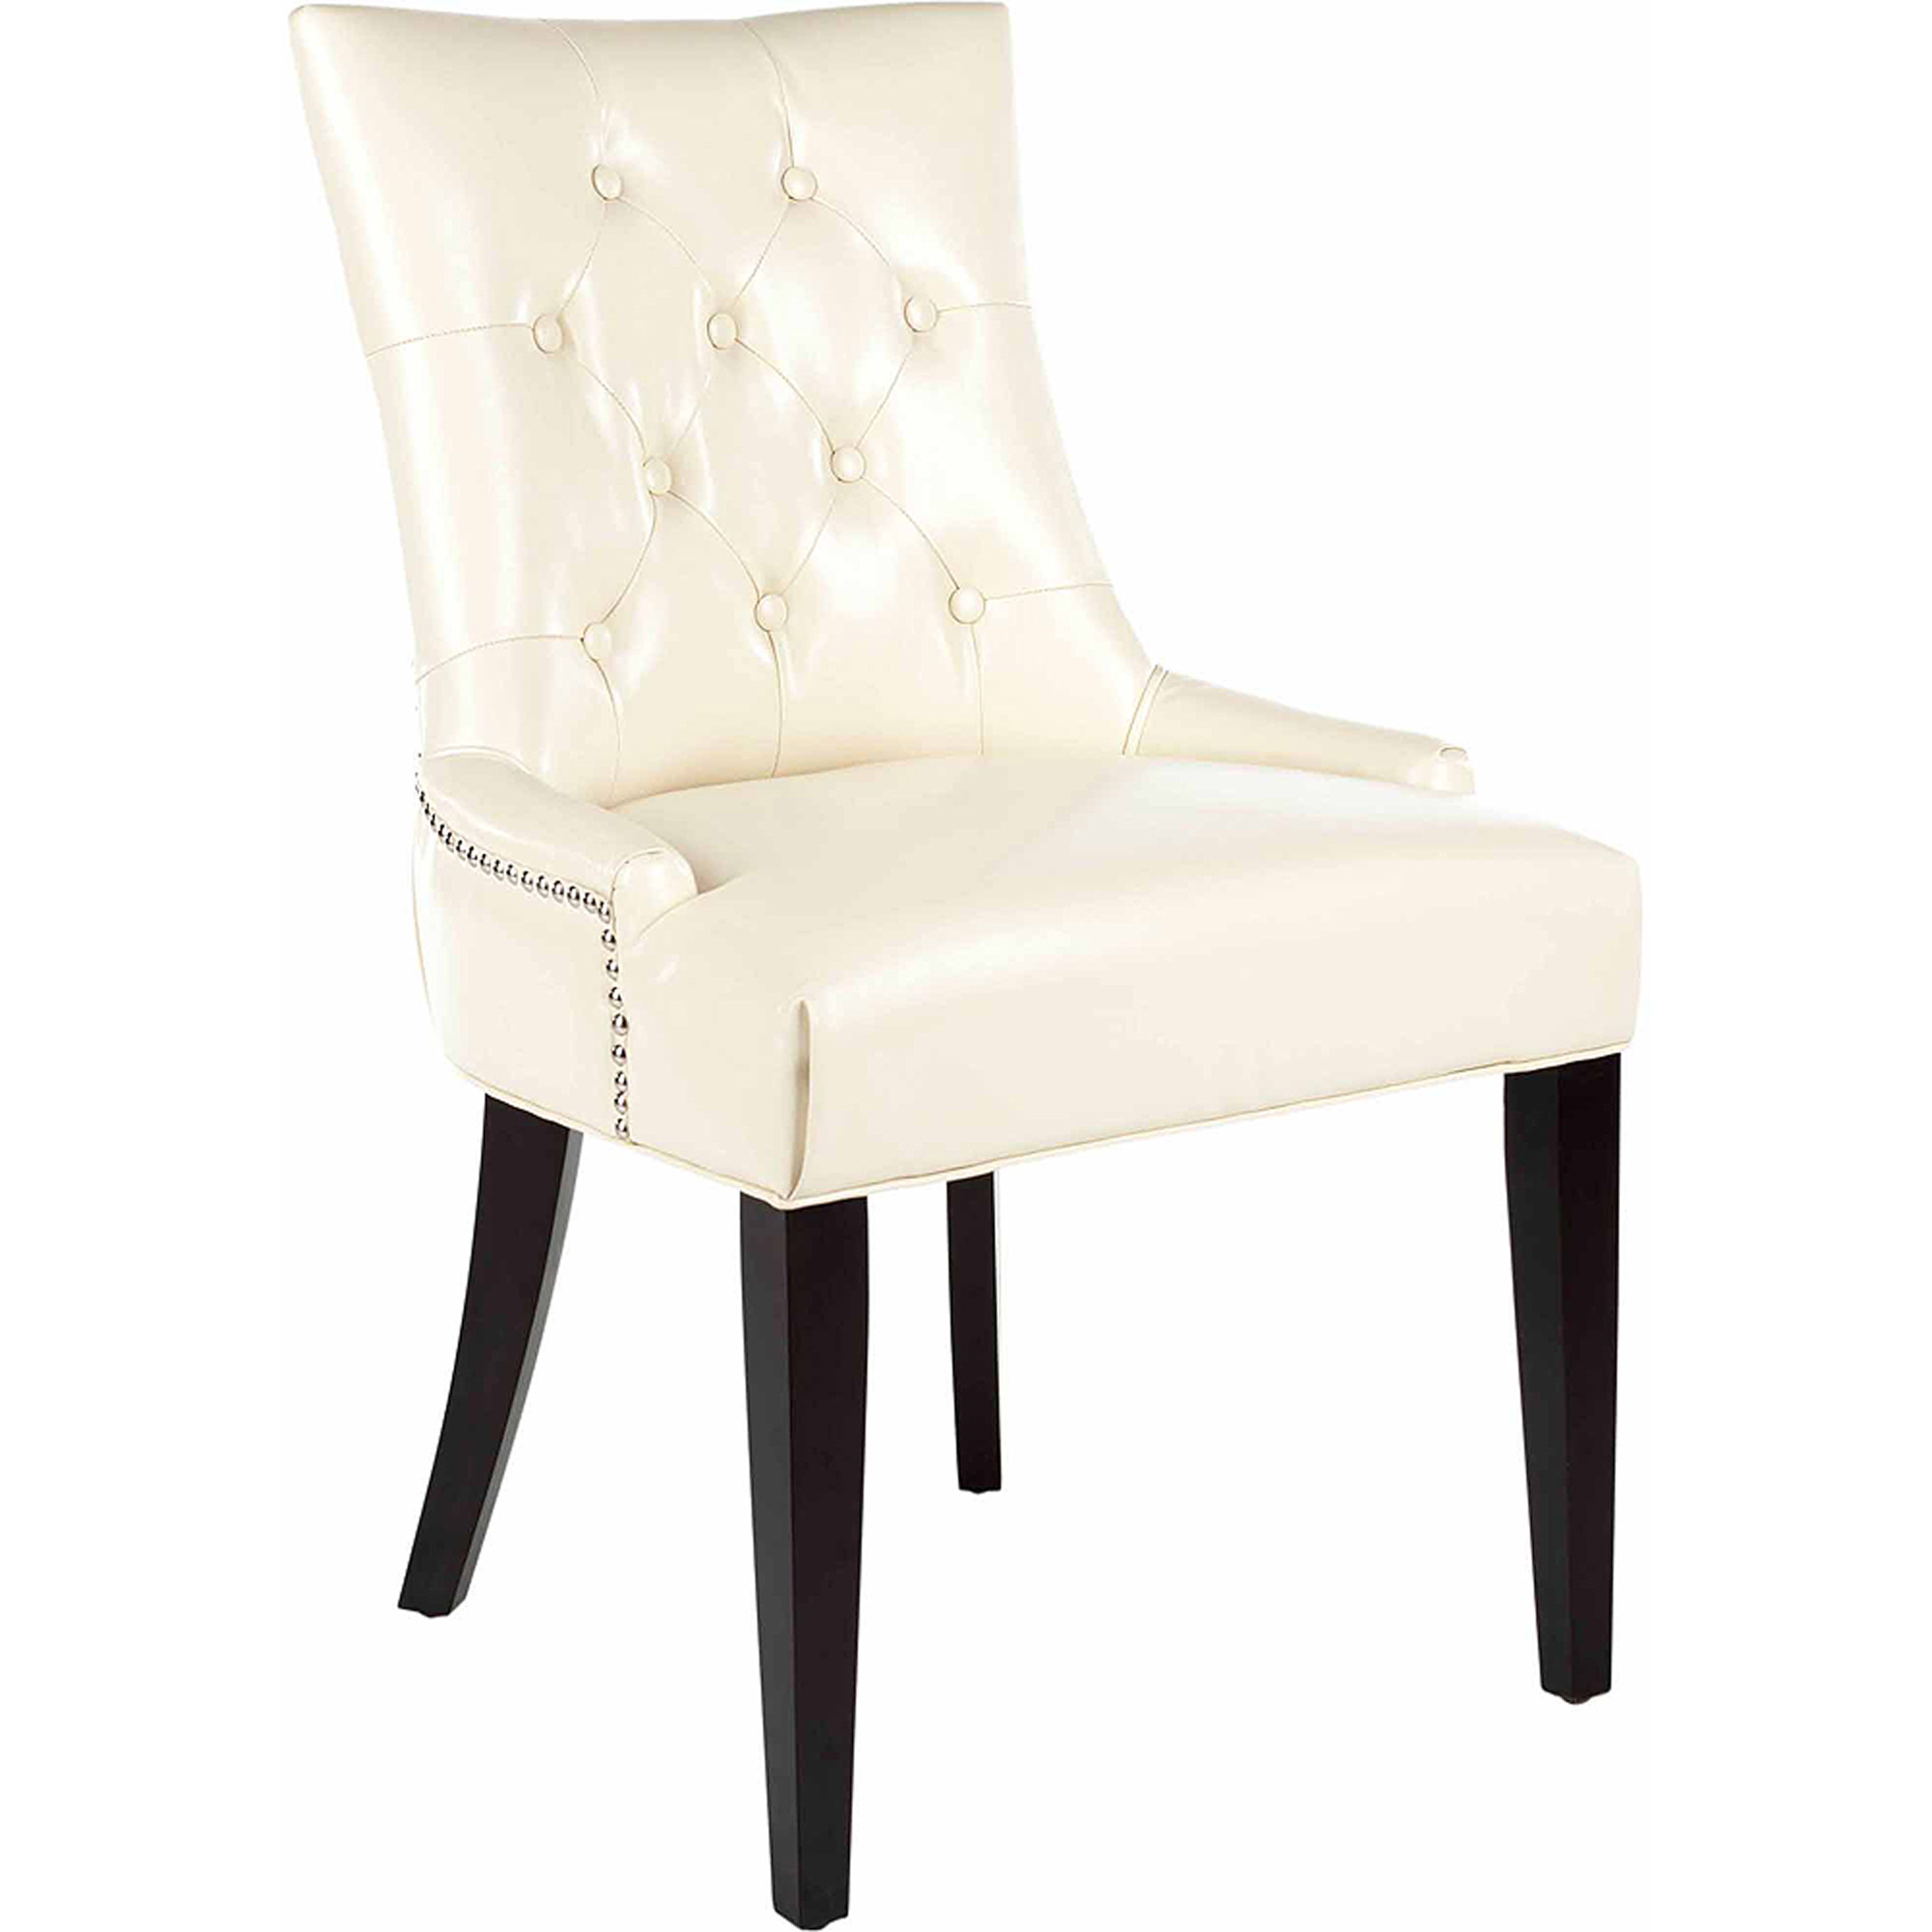 Leather Dining Chairs With Nailheads Nailhead Dining Chair Nailhead Dining Chair With Nailhead